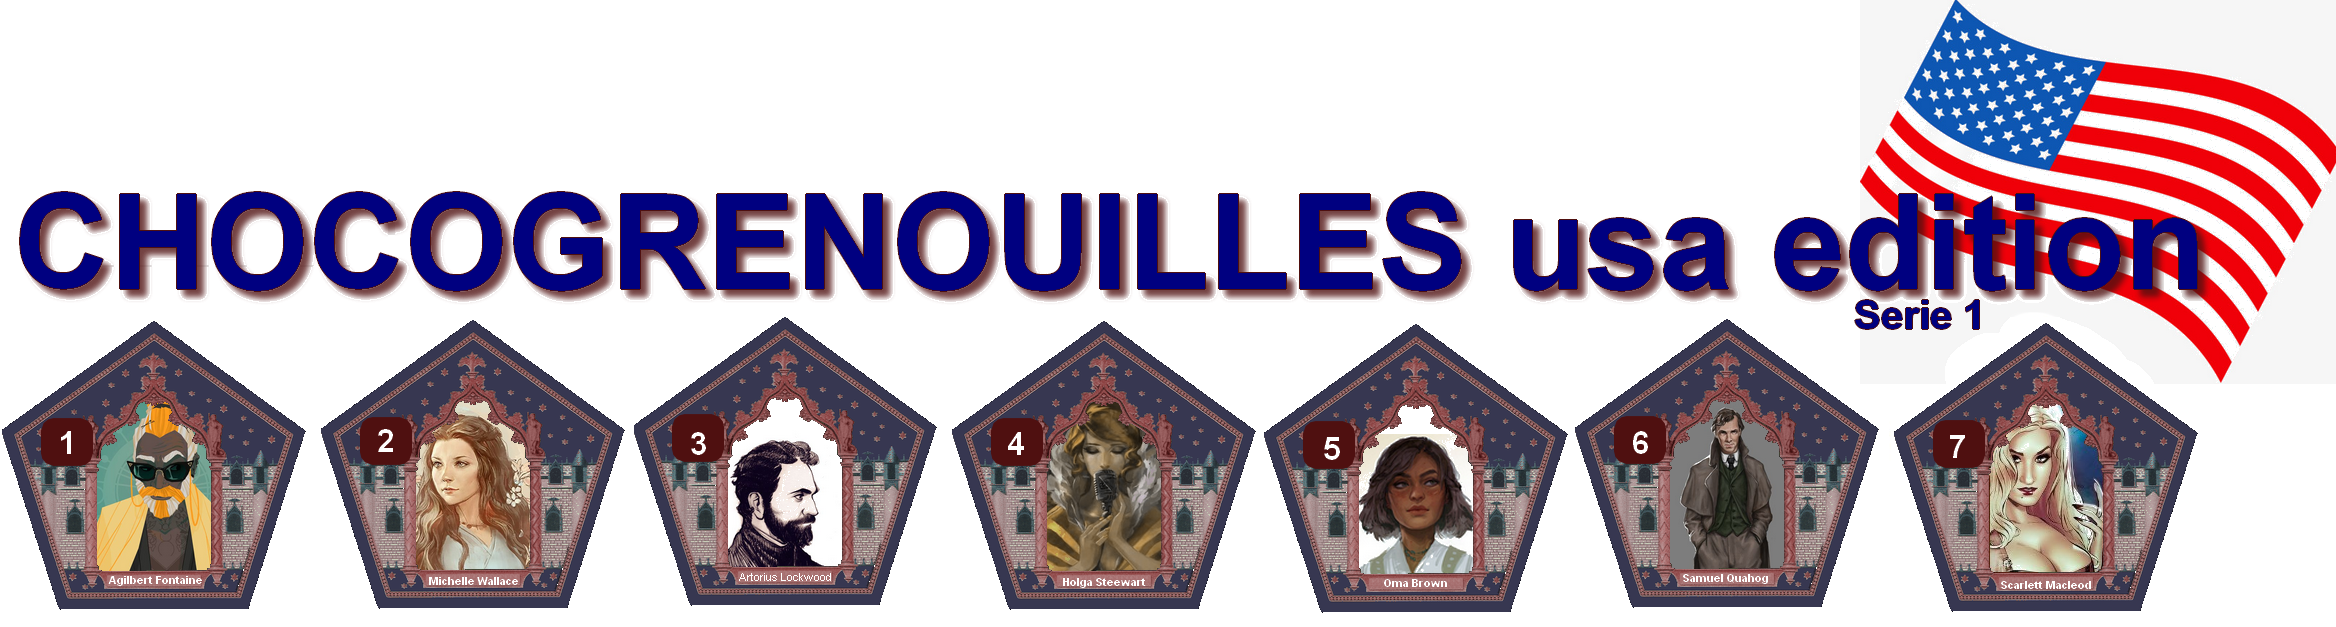 [VOTES] Chocogrenouilles USA edition Unknown